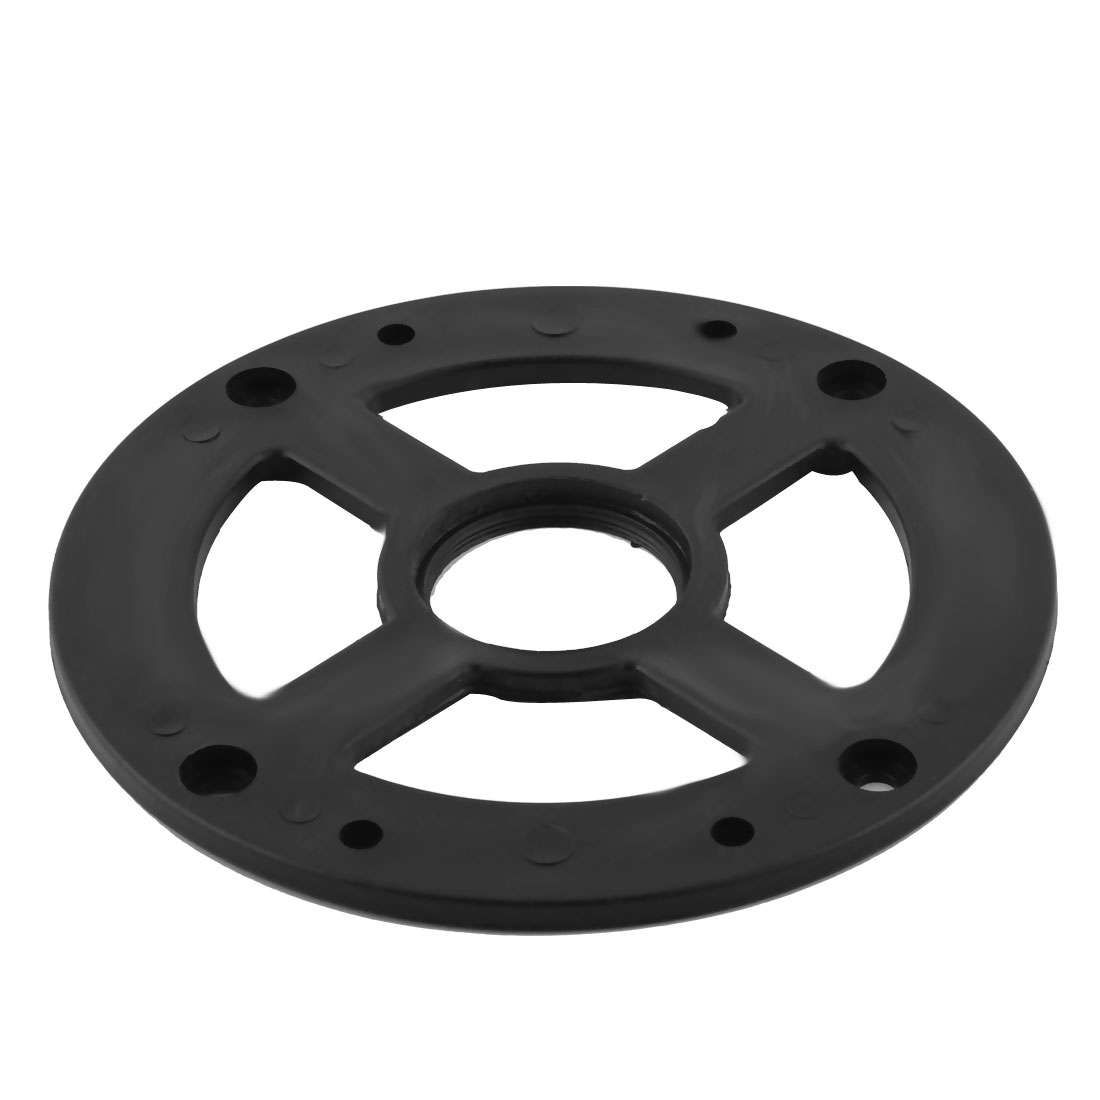 Black Plastic Replacement Base for Motor Machinery 155mm Dia 6mm Thickness